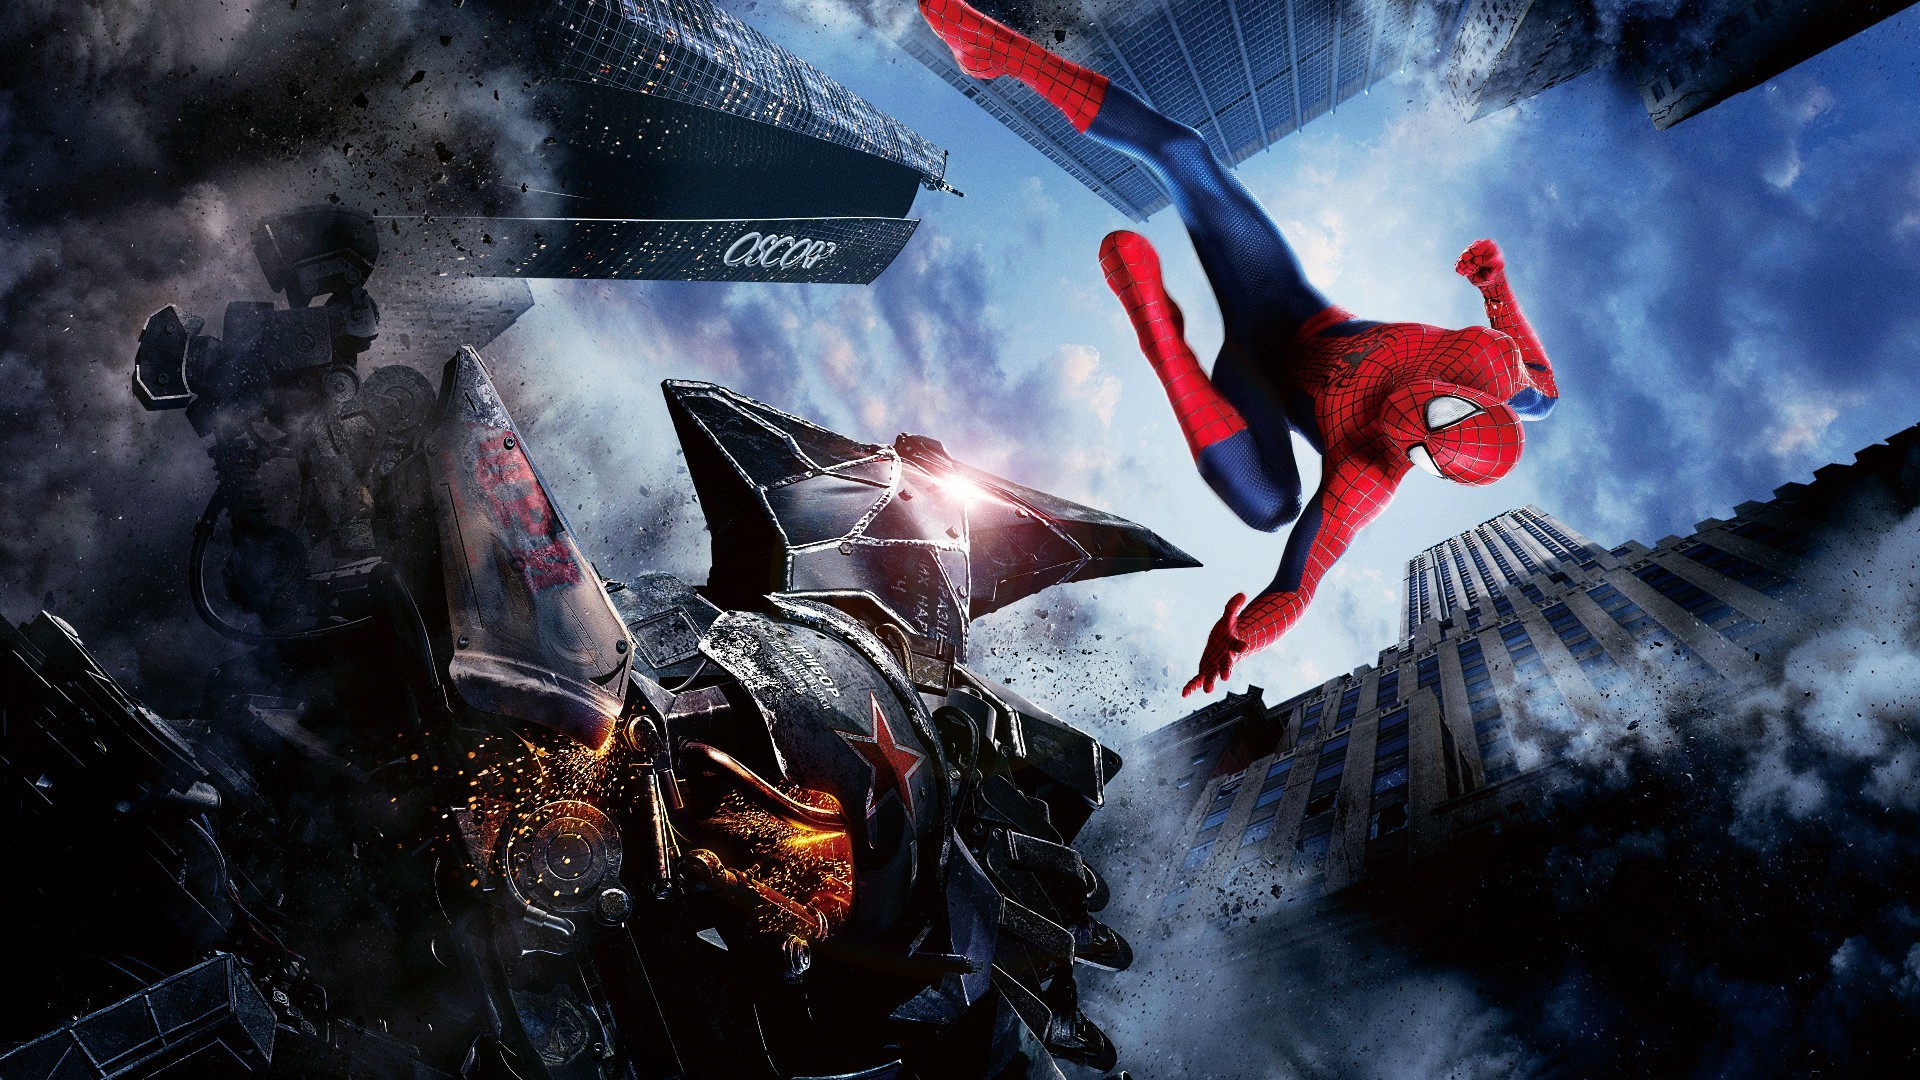 spider man homecoming 2 full movie download - designing an aesthetic